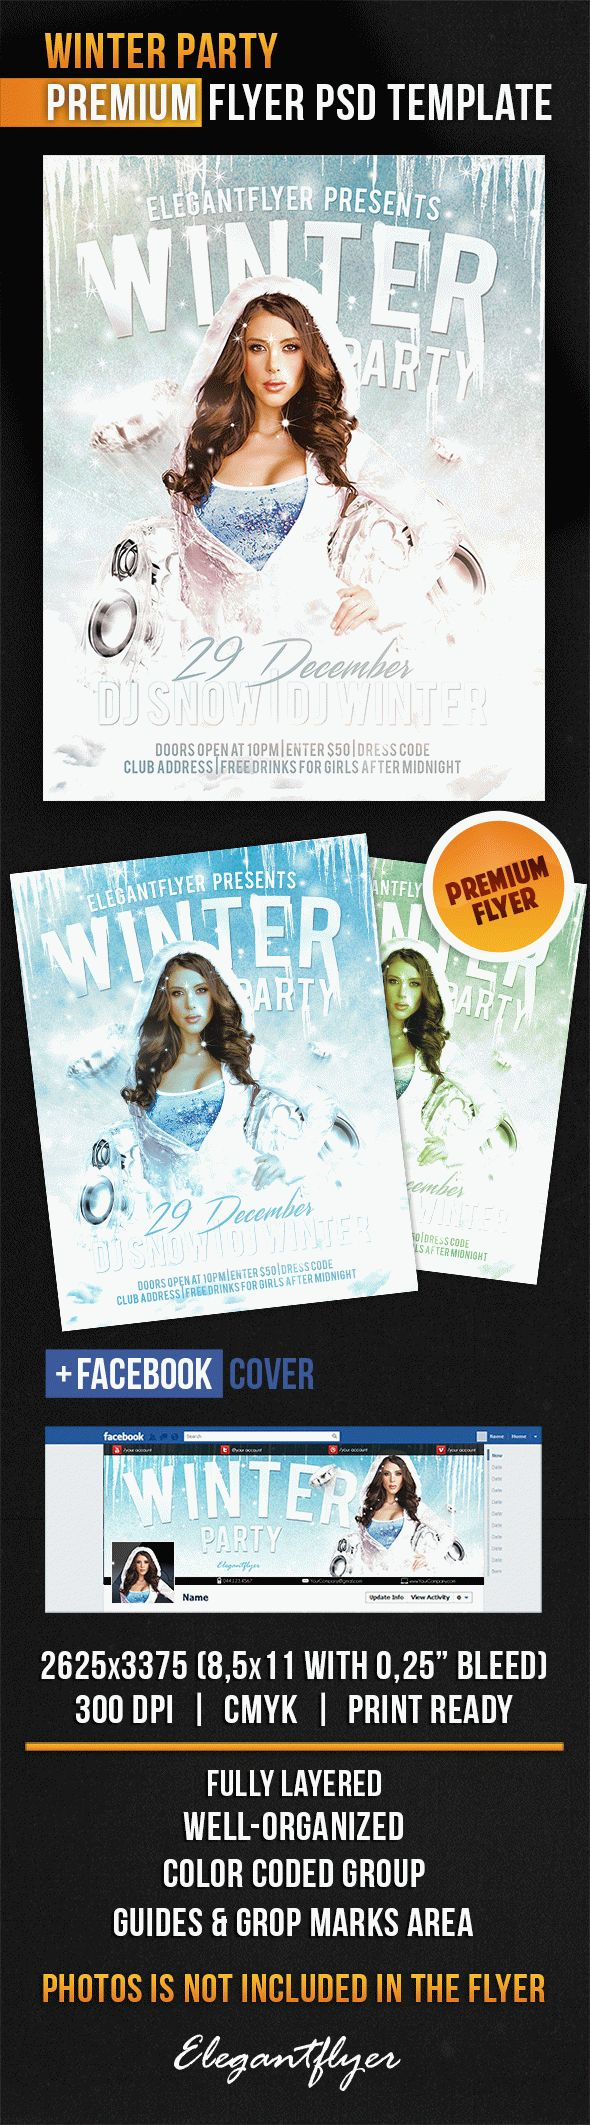 Winter Party Invitation Flyer Template